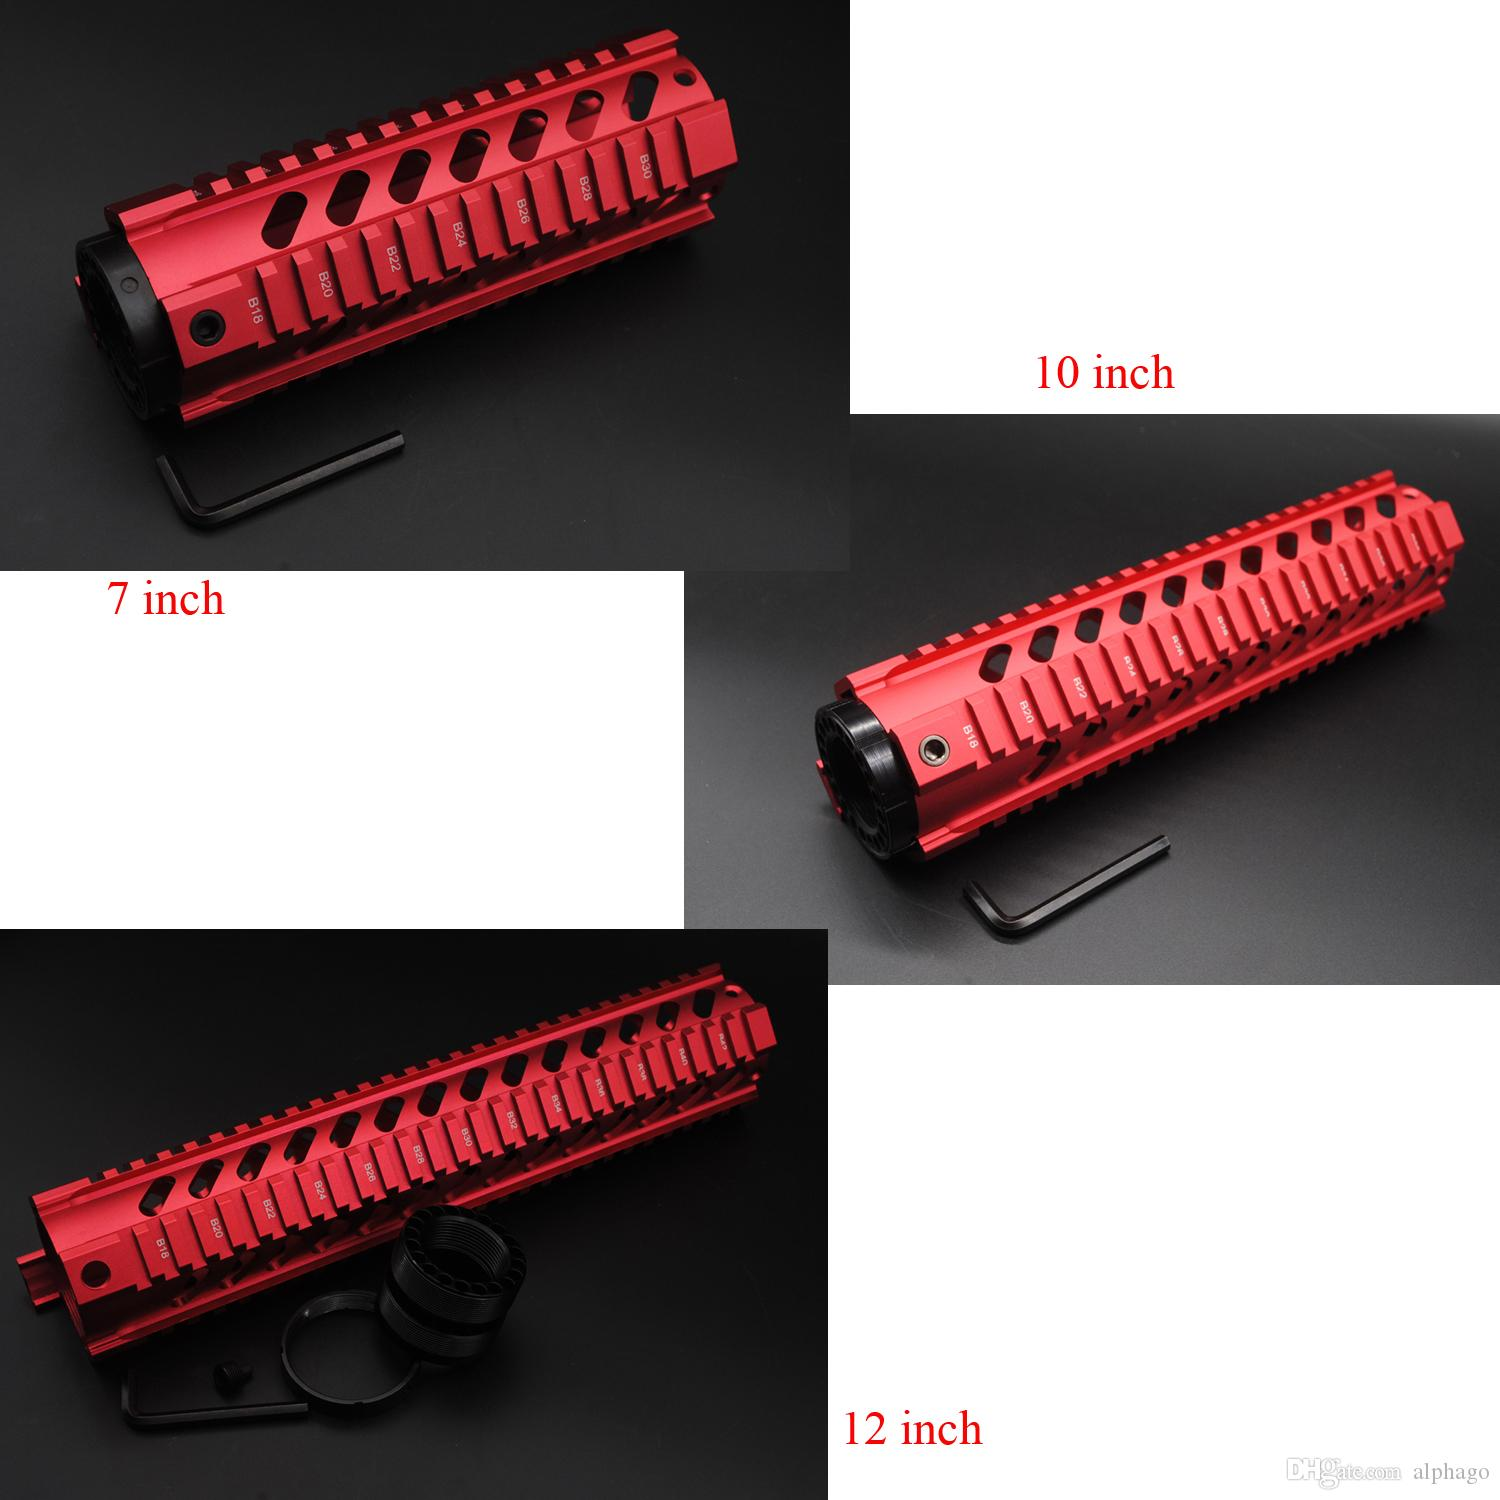 New Chinese Red 7'' 10'' 12'' Length Quad Rail Handguard Fit .223 / 5.56 Rifle Picatinny Rail Mount Free Float System